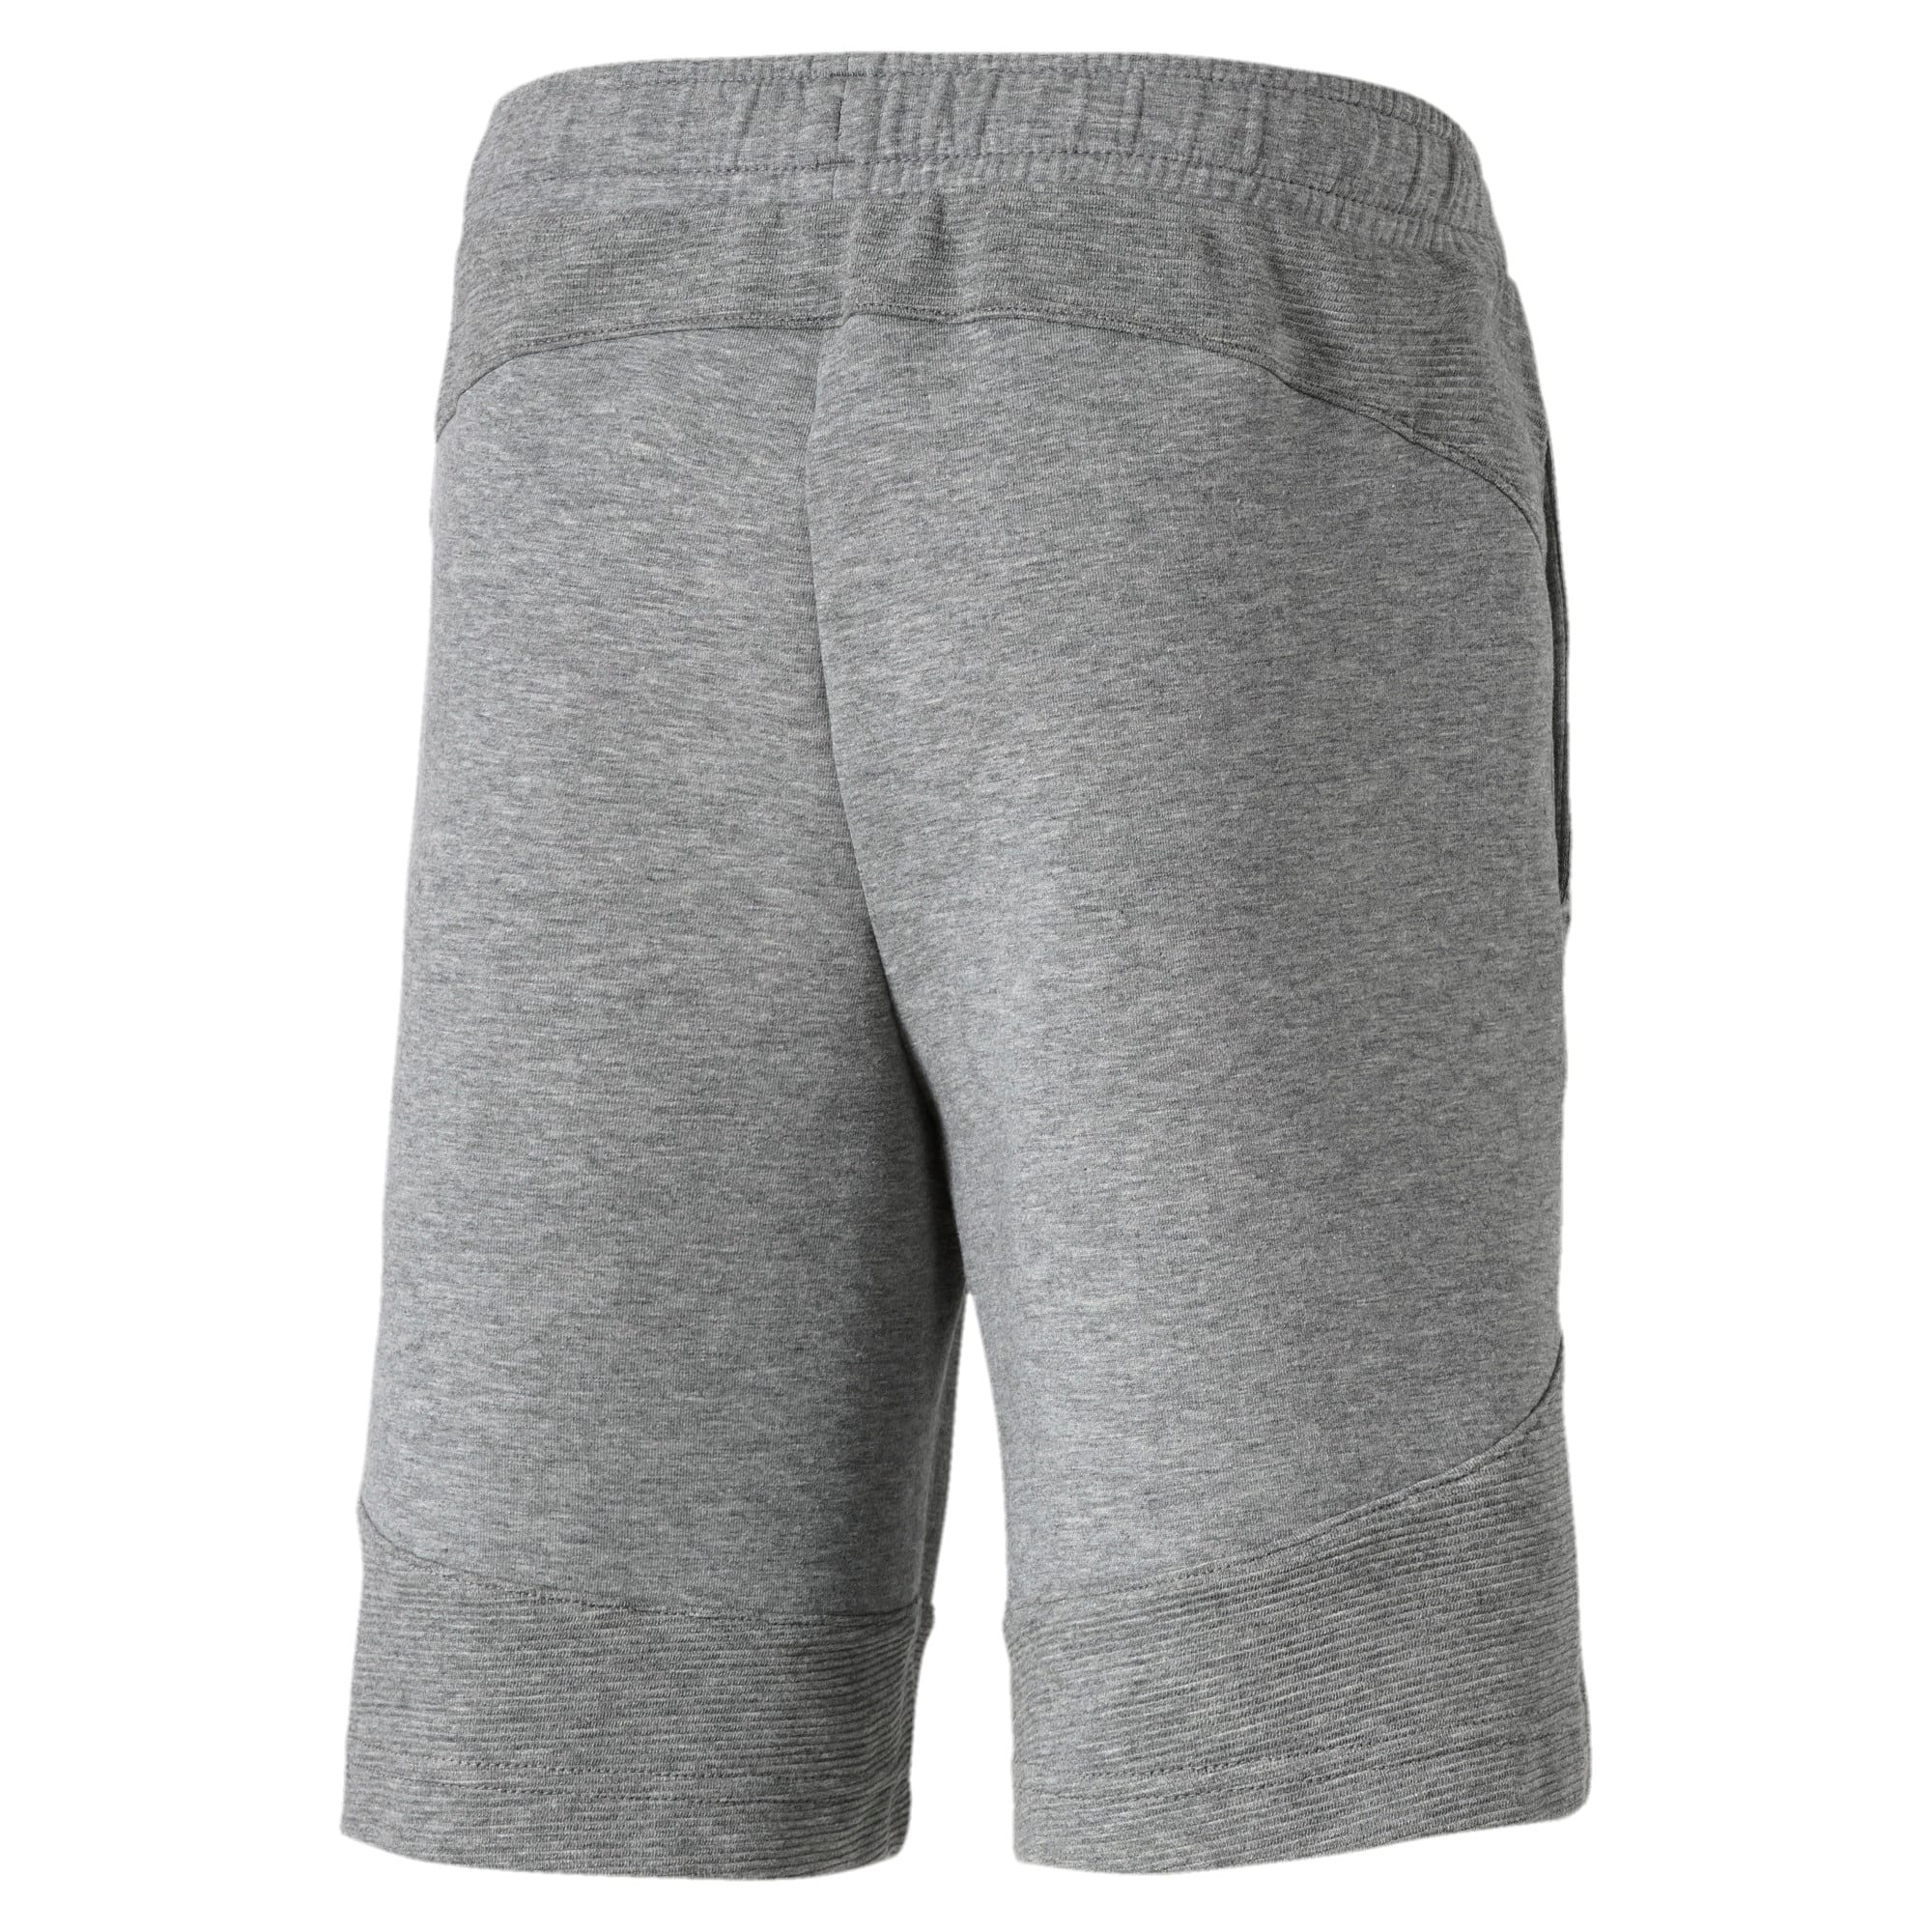 Thumbnail 2 of Evostripe Knitted Boys' Shorts, Medium Gray Heather, medium